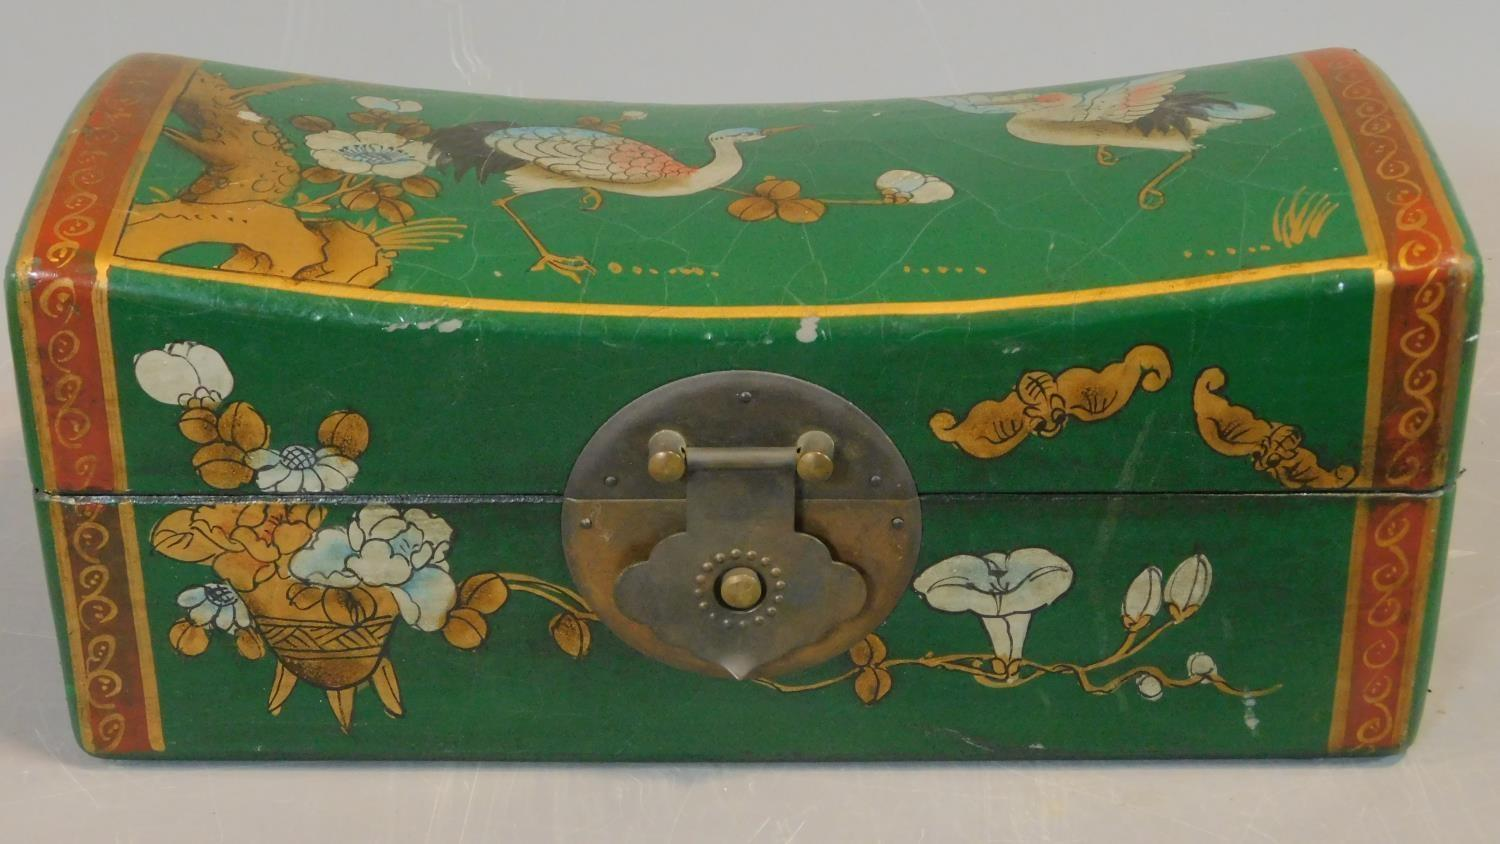 A green painted and lacquered Chinese box with floral motifs. H.12 W.28 D.11.5cm